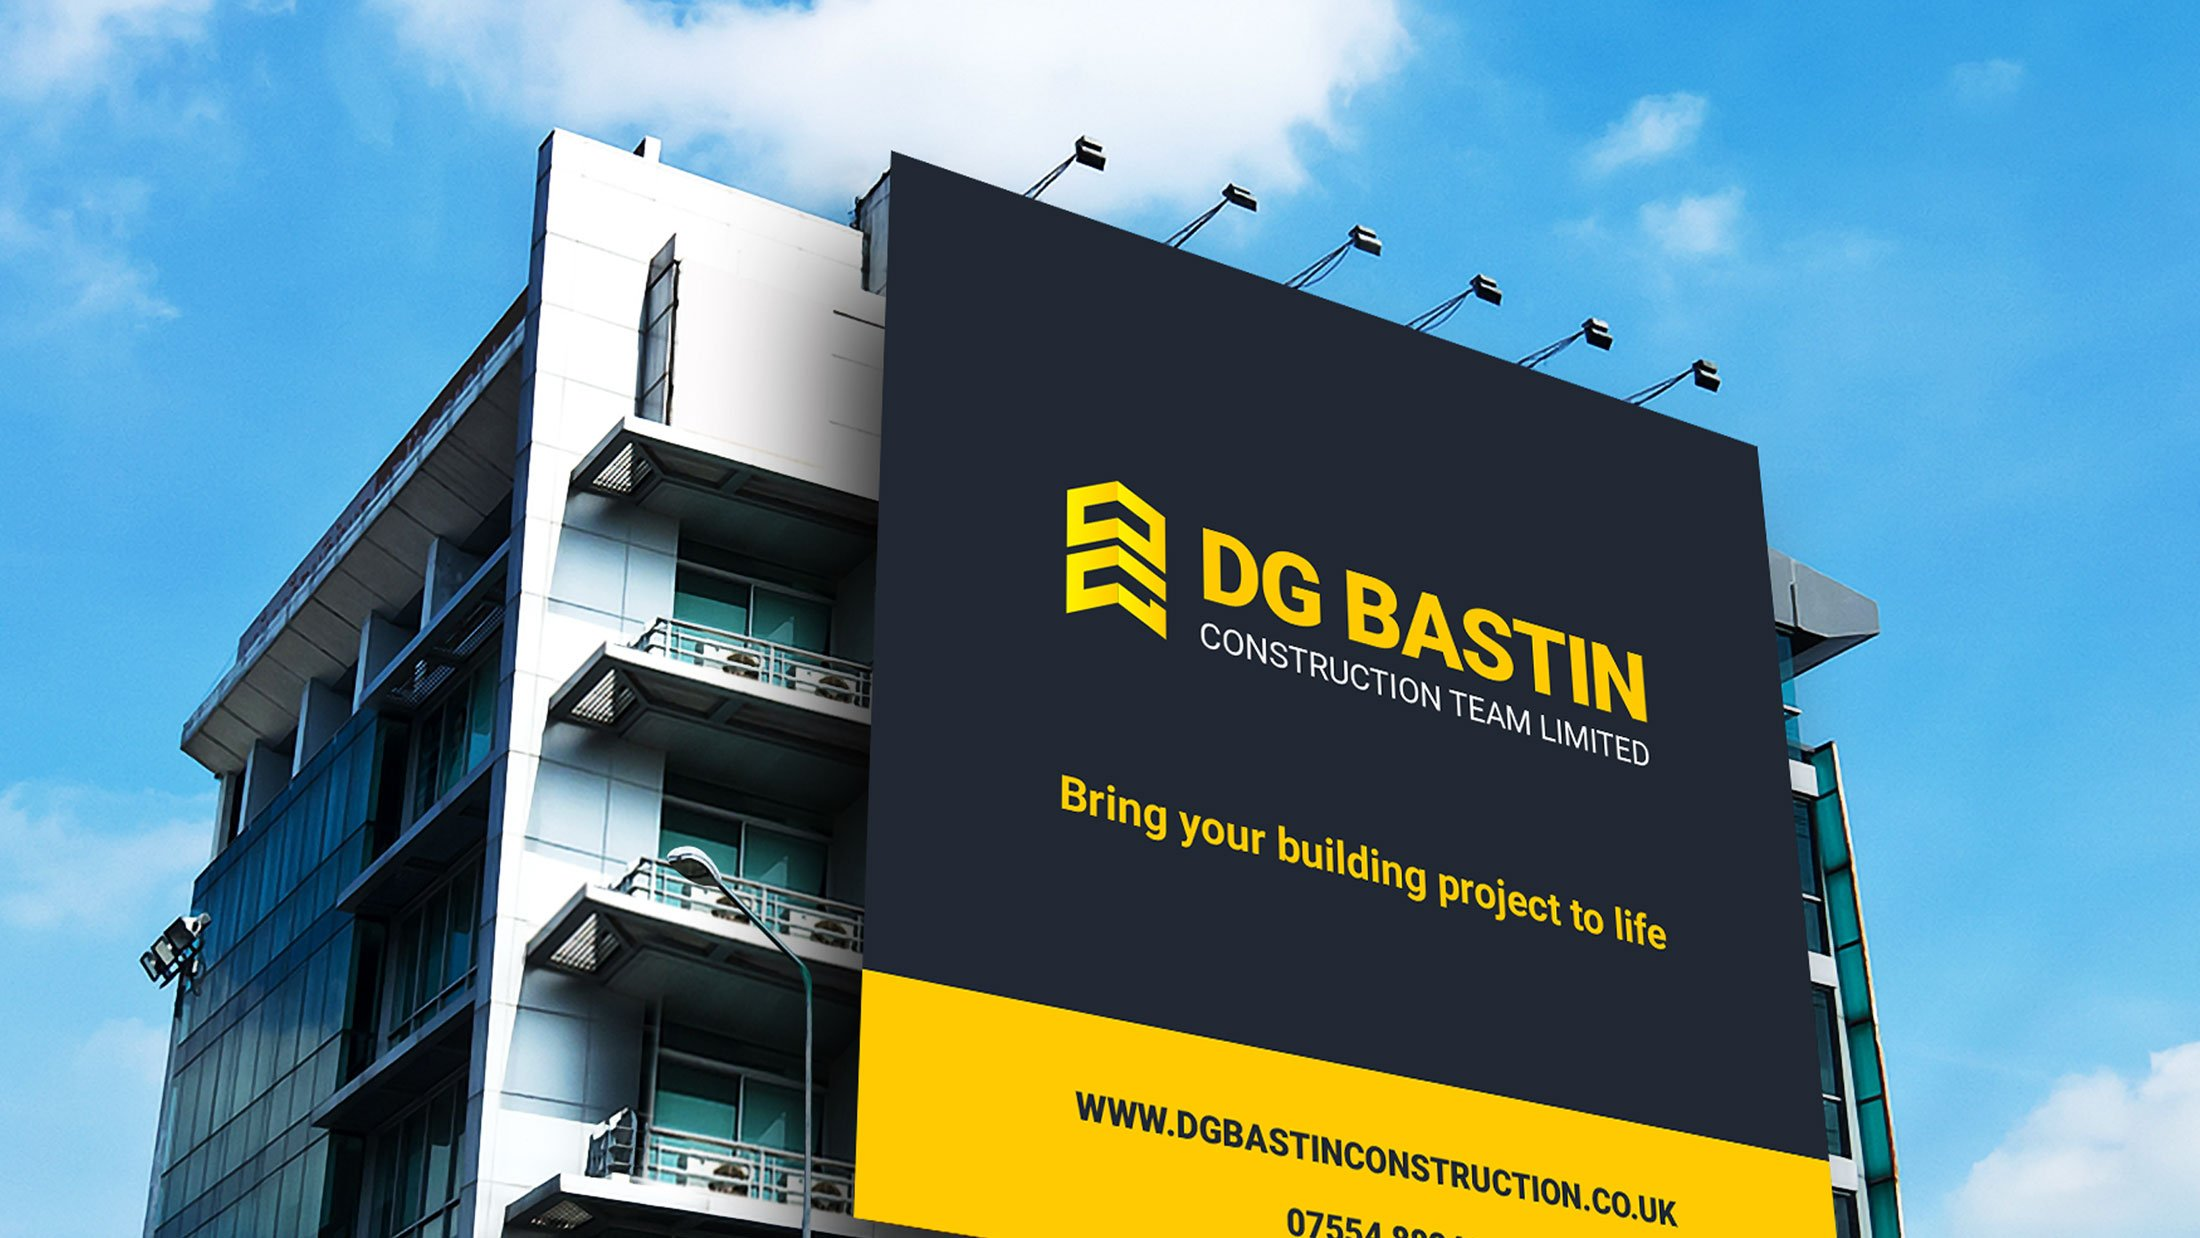 DG Bastin Construction Services Limited